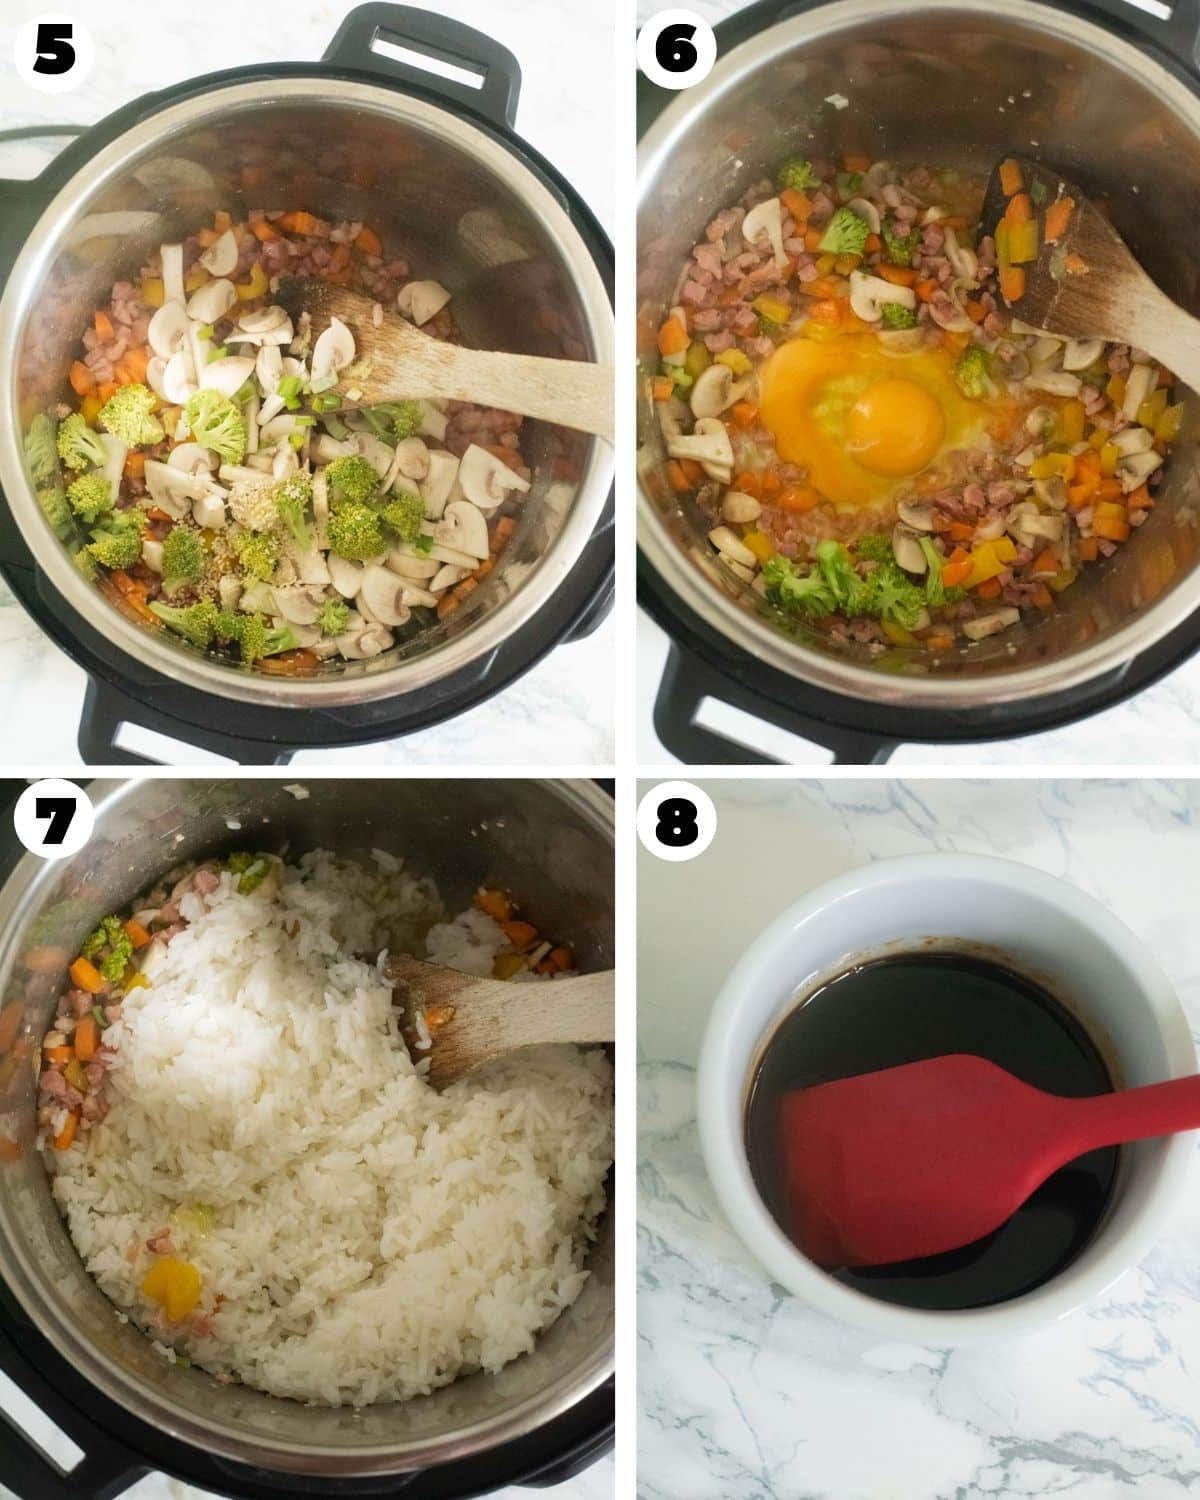 Steps showing eggs, cooked rice and sauce added into the sauteed add-ins in the Instant Pot